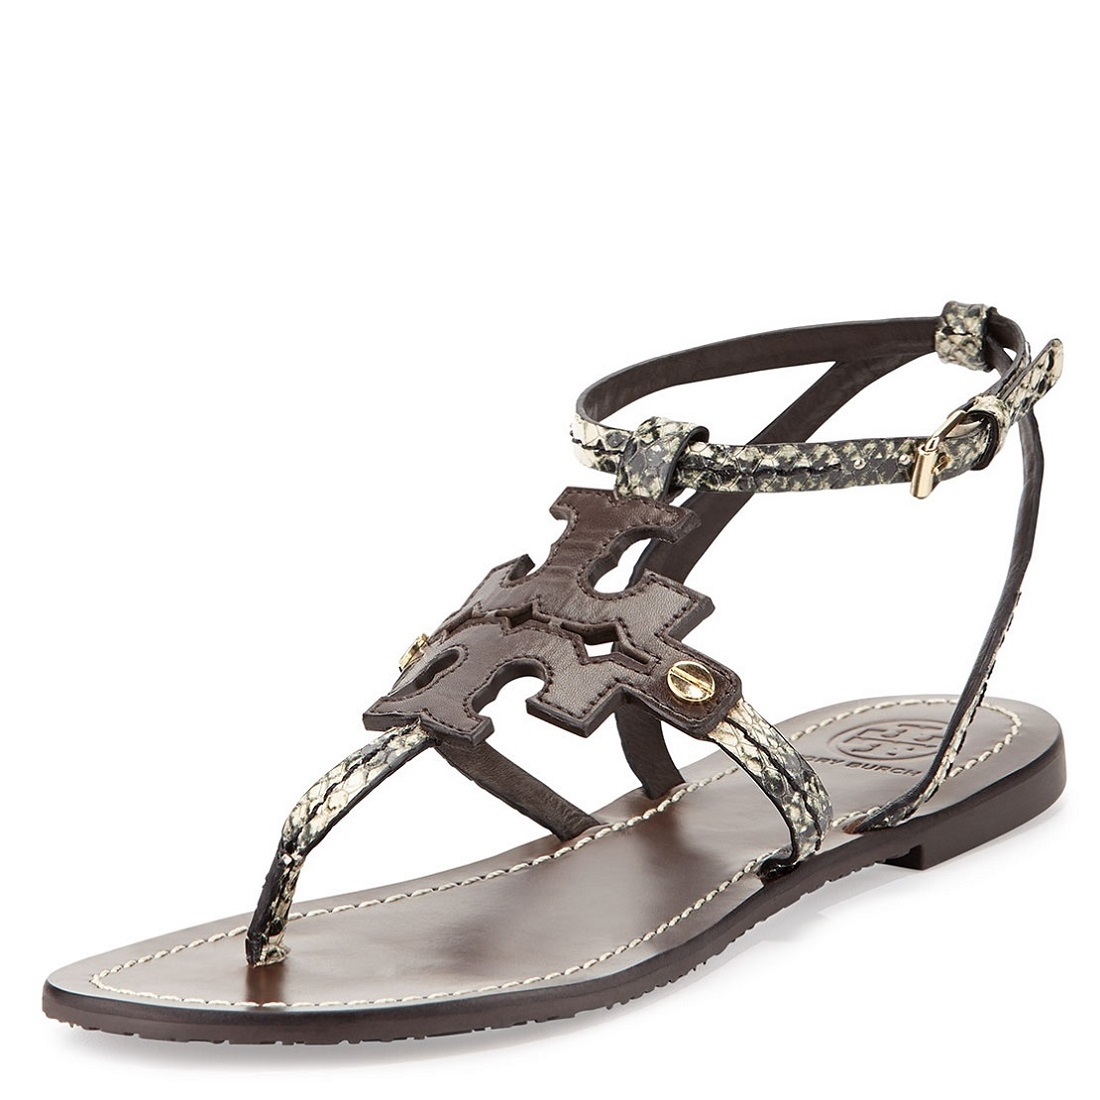 aa82cca451814 Picture of Tory Burch Phoebe Snake-Embossed Flat Sandals